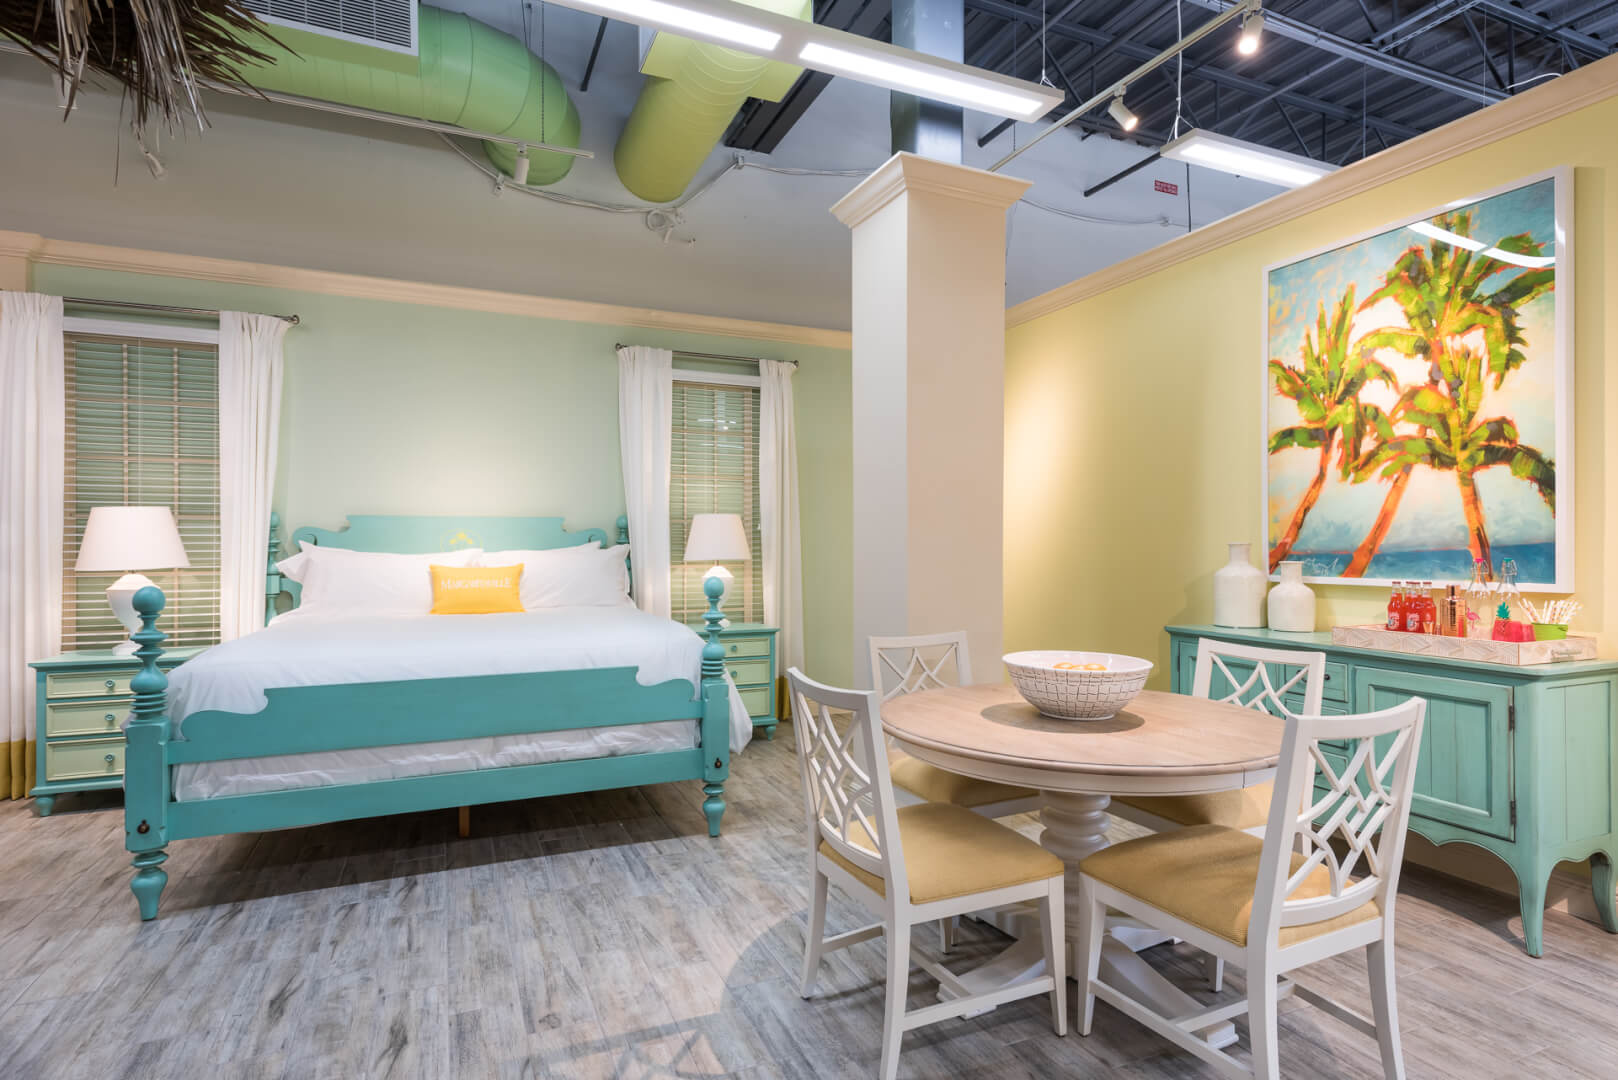 Margaritaville Resort Orlando Introduces Chic Ethan Allen